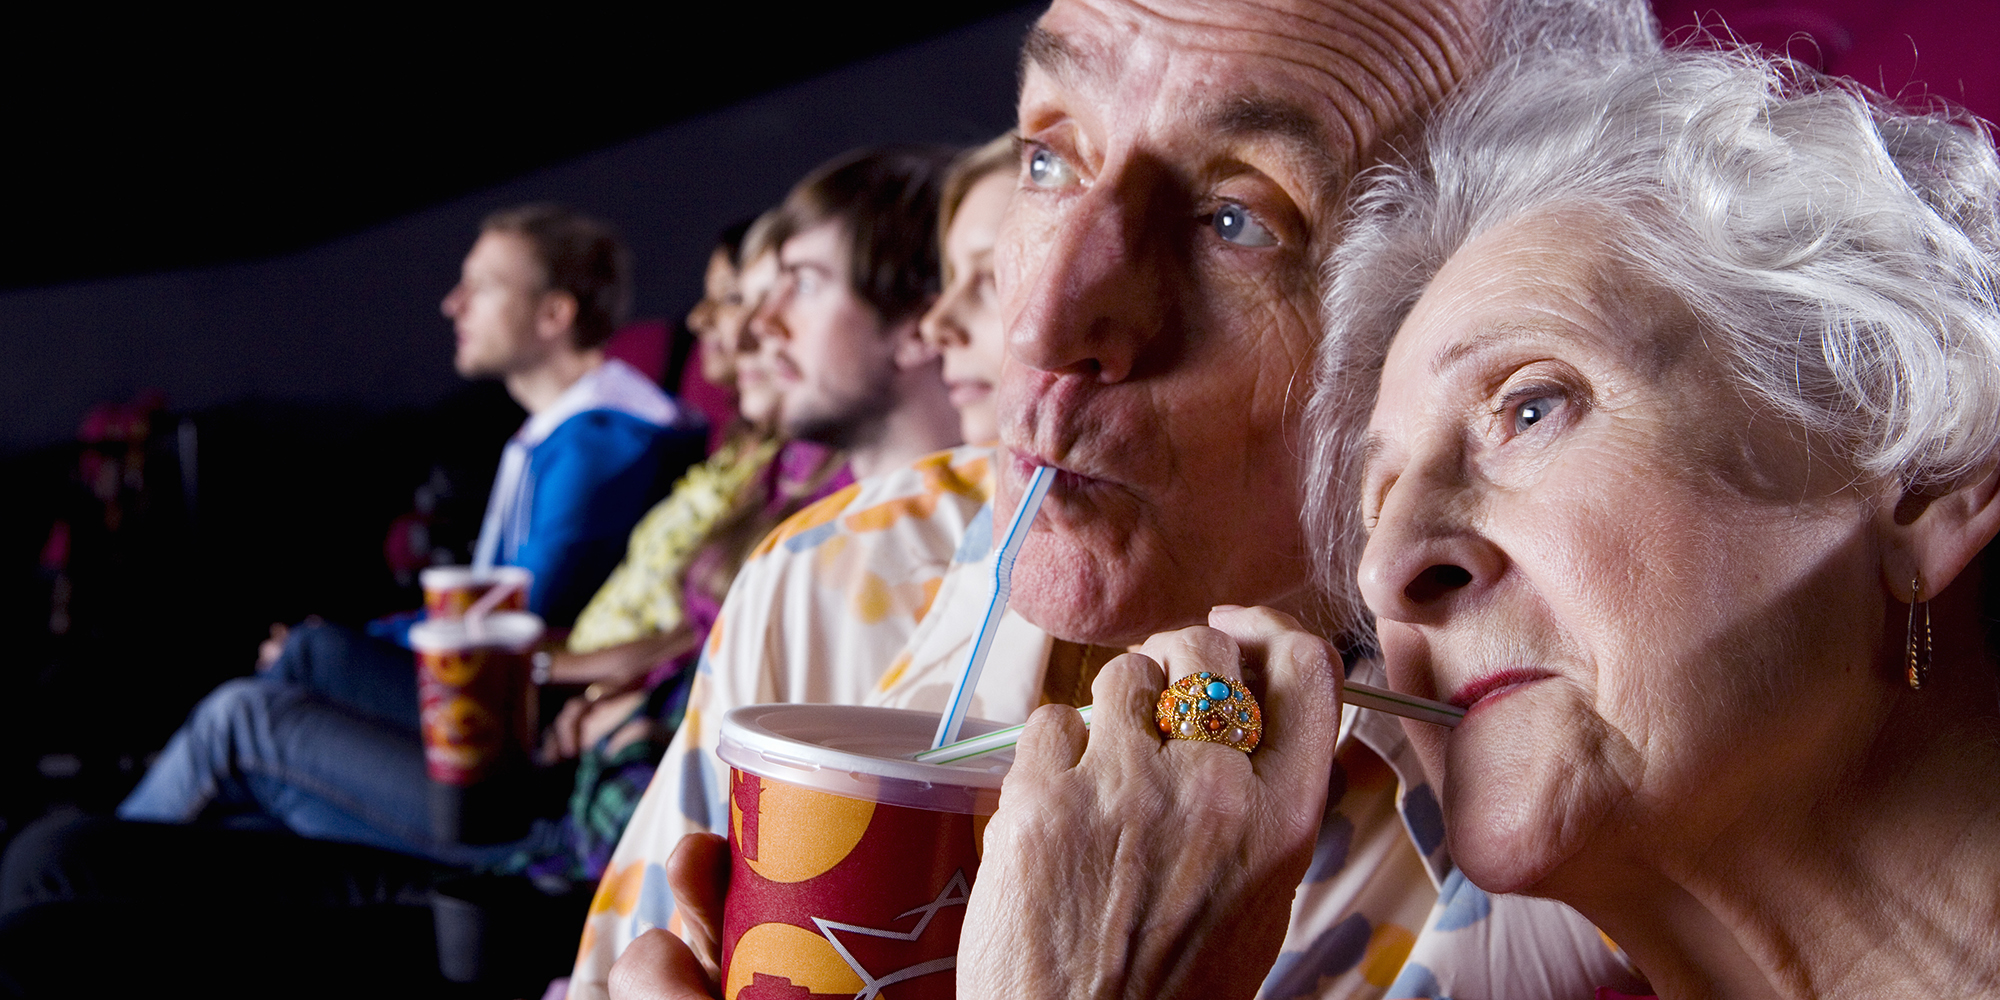 How to enjoy going to the movies with hearing loss